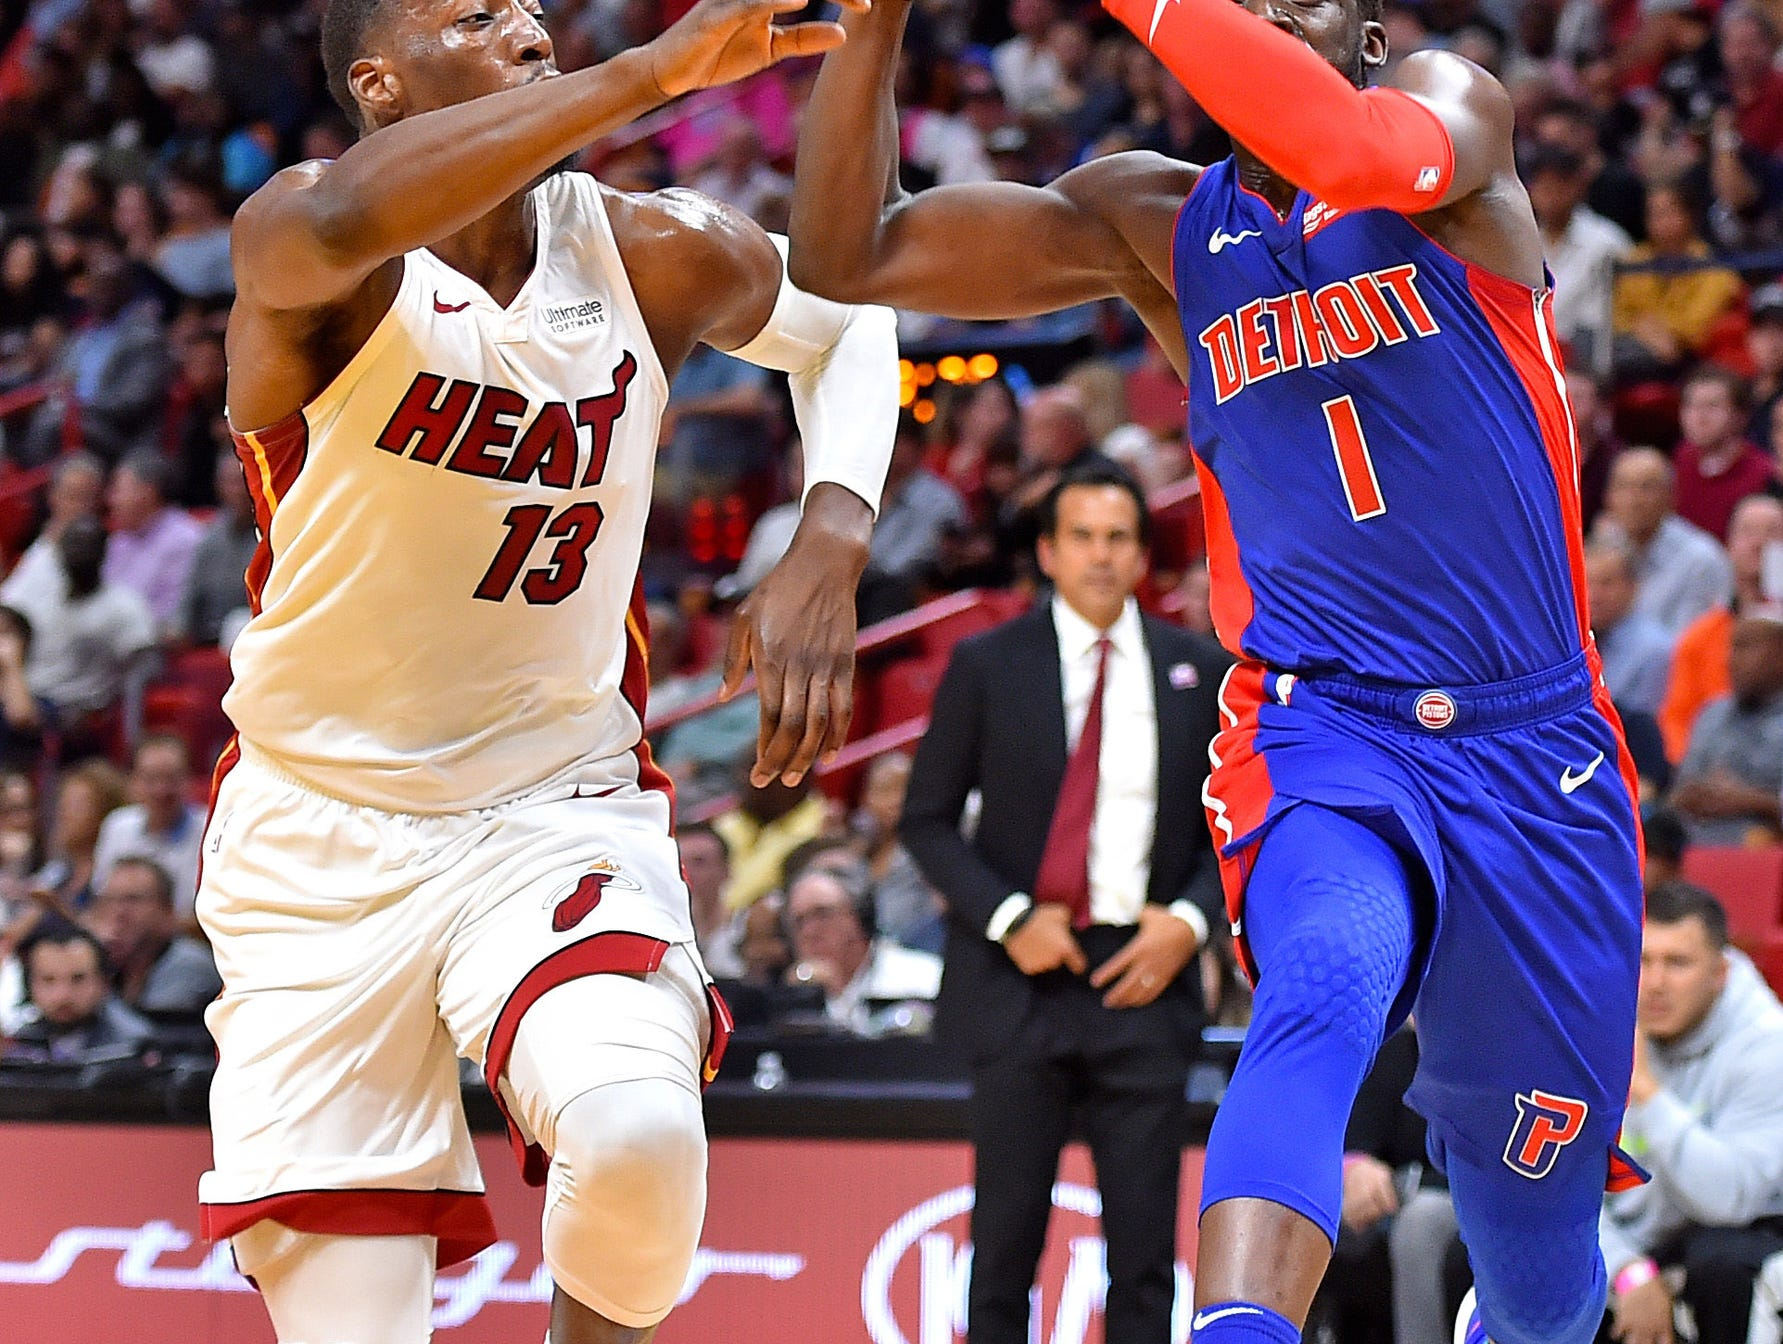 Detroit Pistons guard Reggie Jackson (1) drives to the basket as Miami Heat center Bam Adebayo (13) defends during the second half at American Airlines Arena on Wednesday, March 13, 2019.